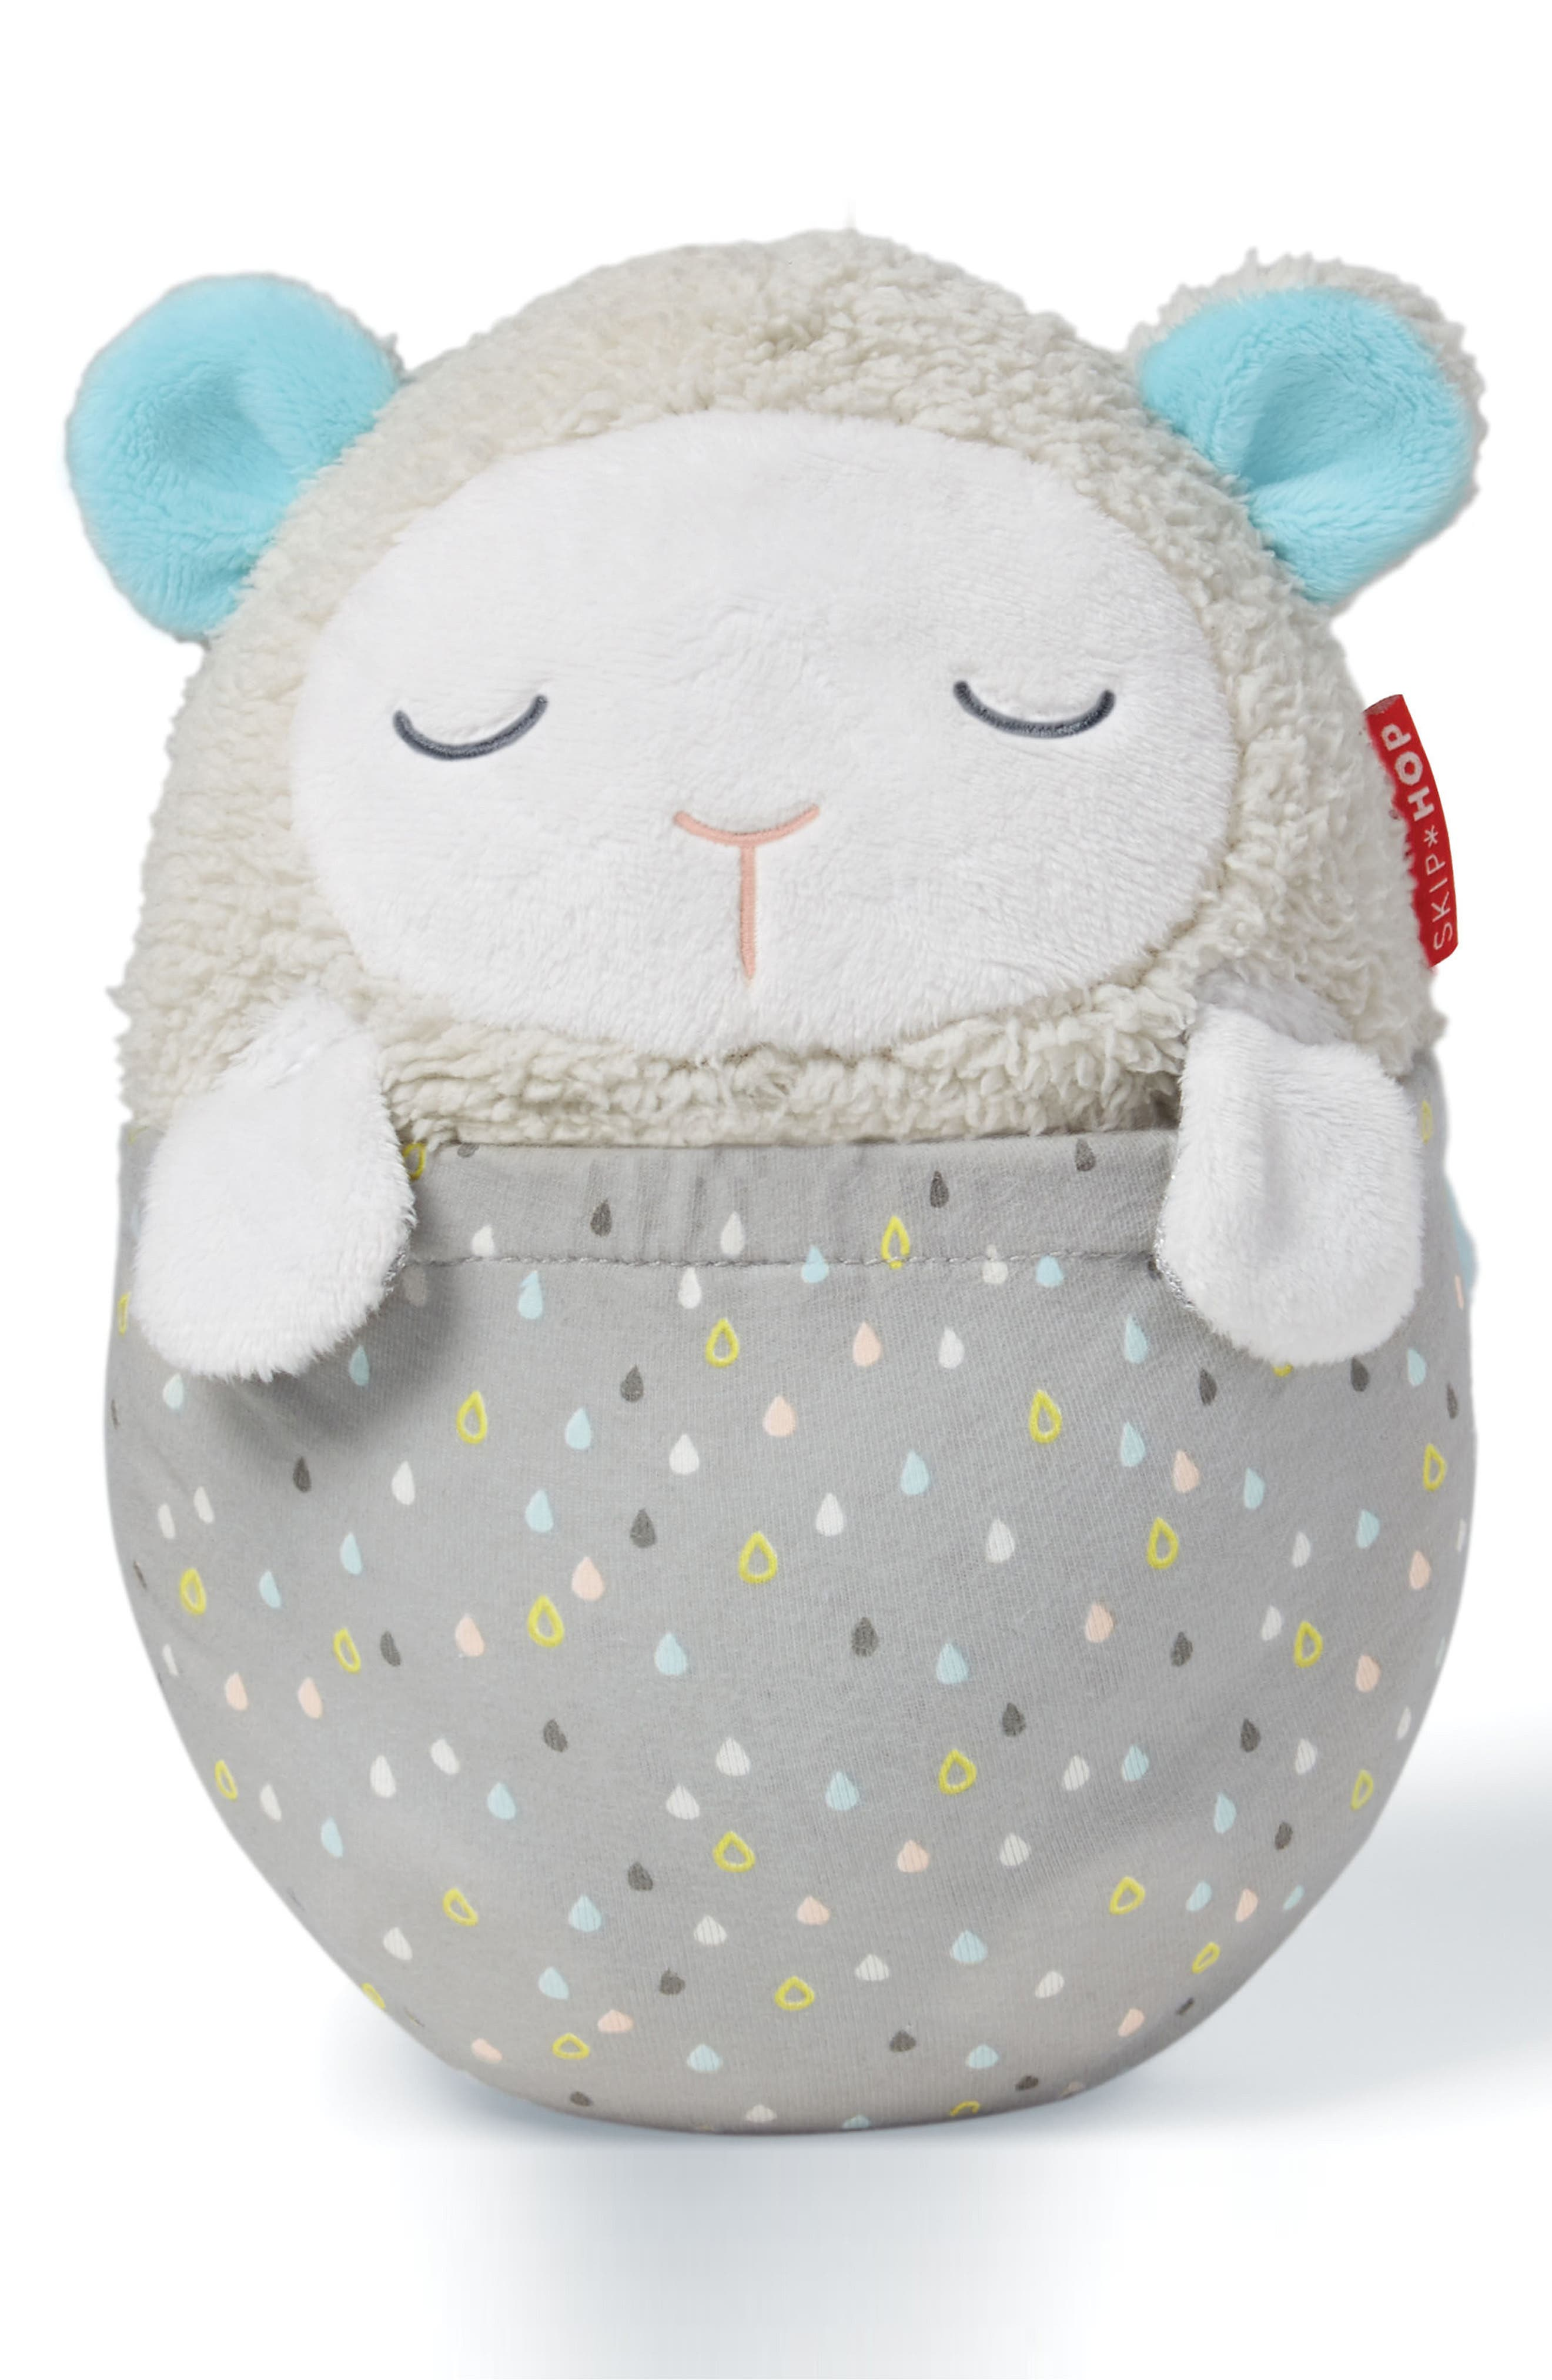 Main Image - Skip Hop Moonlight & Melodies Hug Me Projection Soother